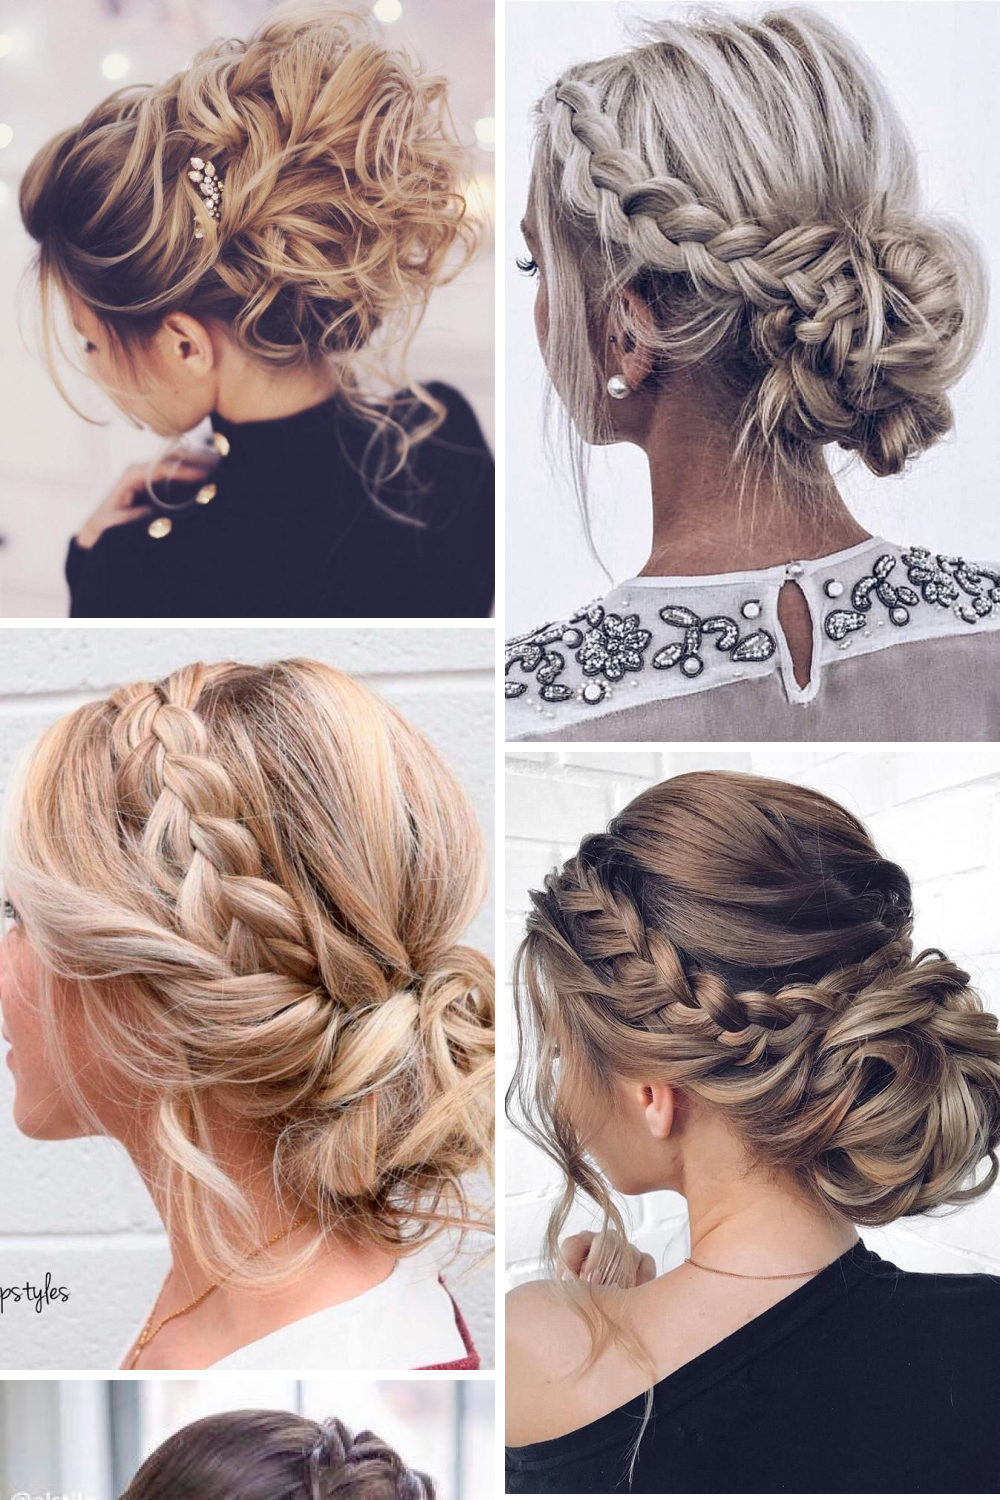 24 Easy Tips For Wedding Braids Hairstyles Pictures Ideas Designs Braids Hairstyles Pictures Hair Styles Hair Pictures